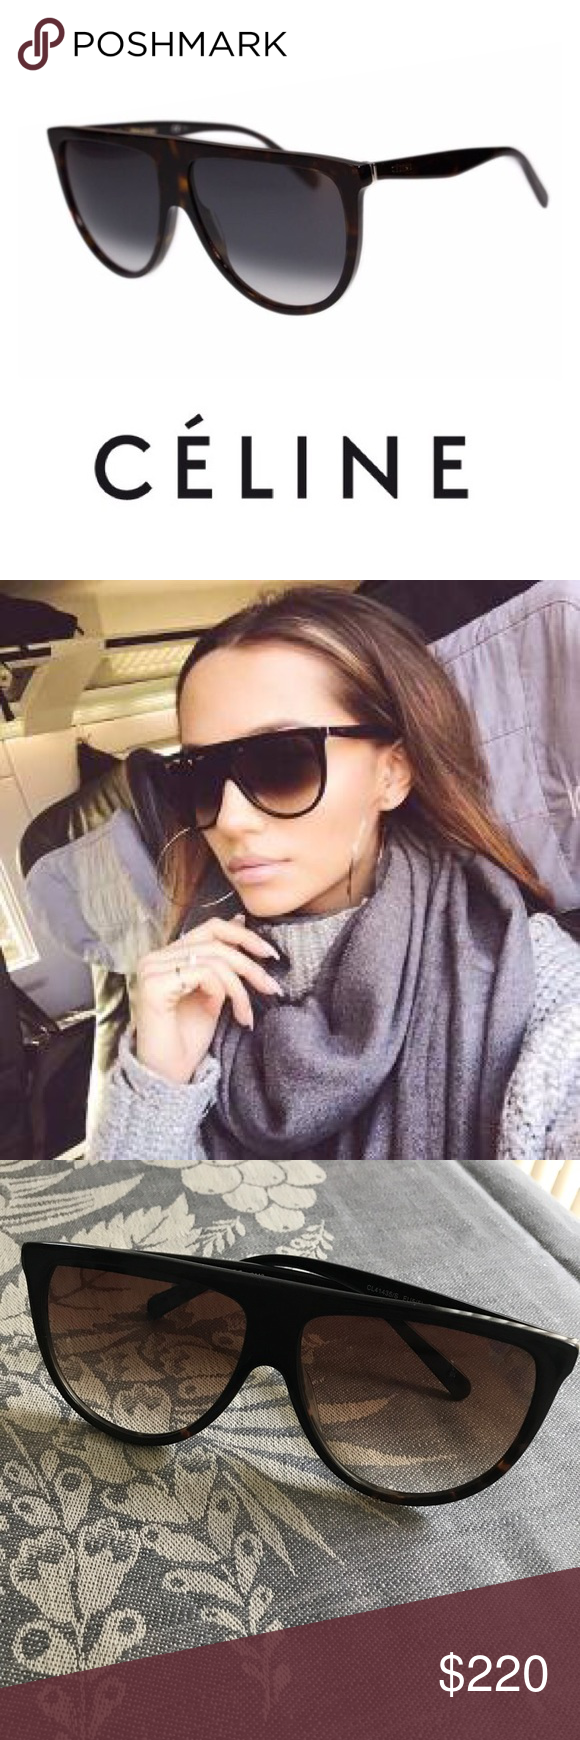 e8efa0bd66 You will love this fine frame   slightly retro vibe. Celine Sunglasses are  the epitome of style ...